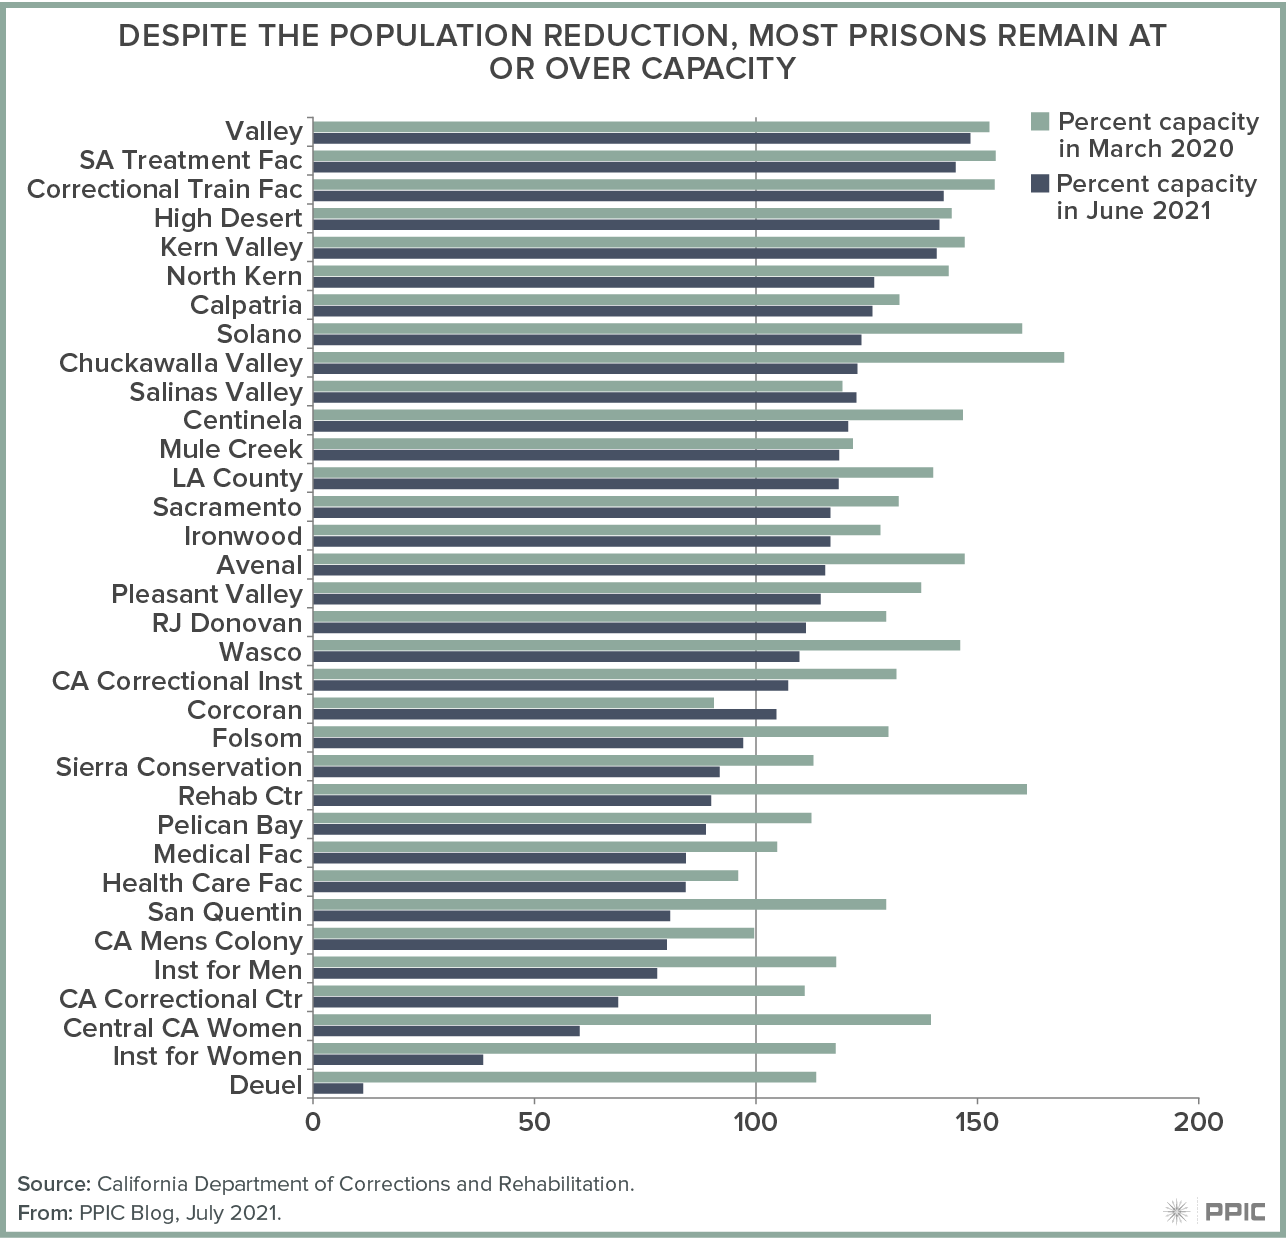 figure - Despite the Population Reduction, Most Prisons Remain at or Over Capacity